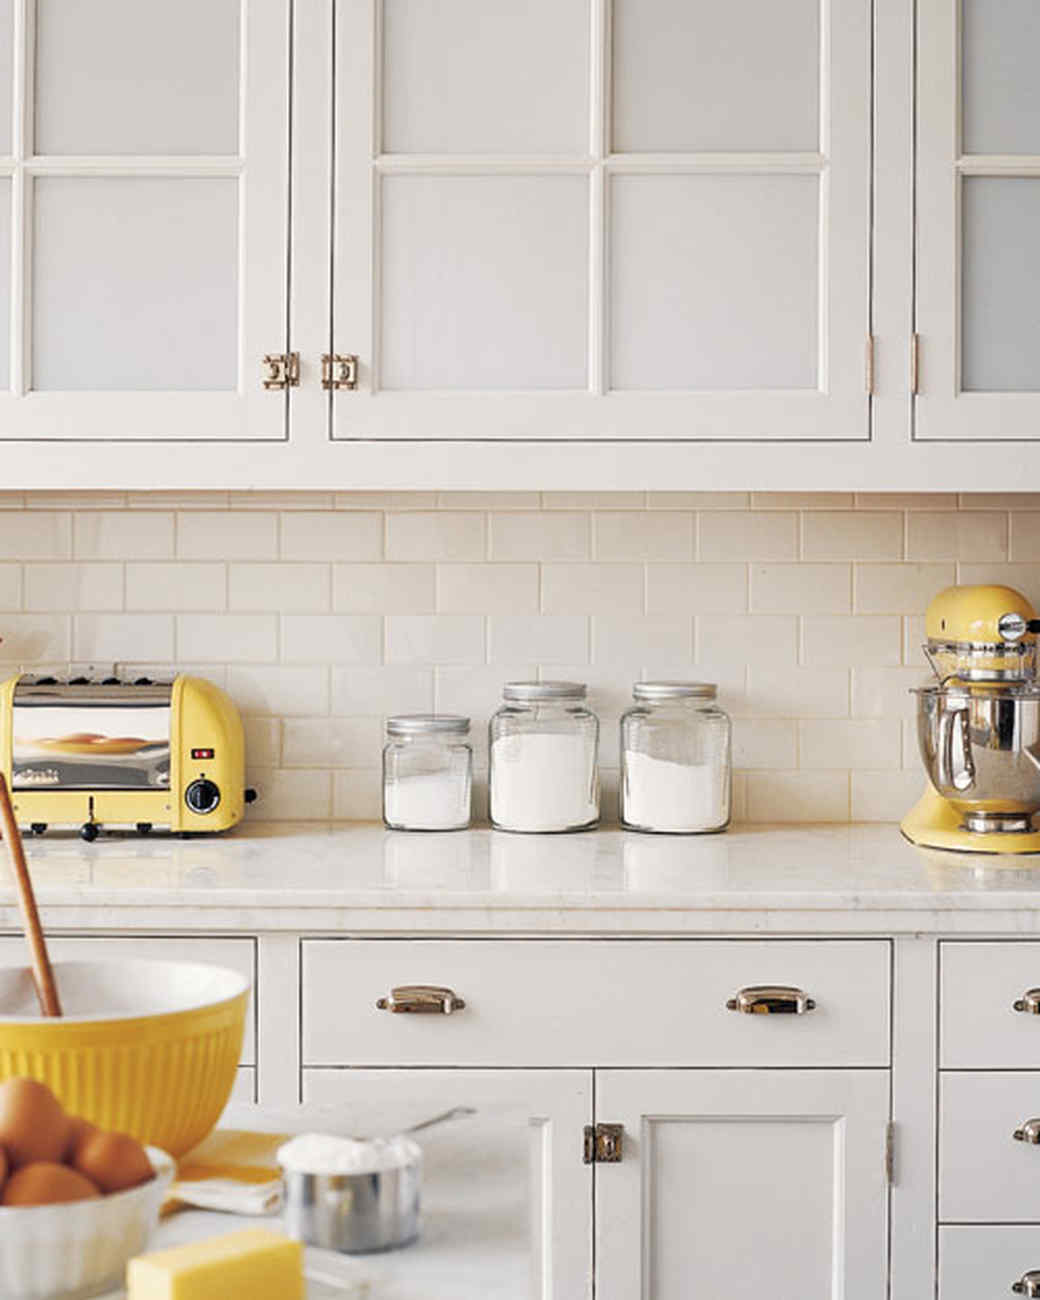 Organize Your Kitchen Cabinets in 11 Easy Steps | Martha Stewart